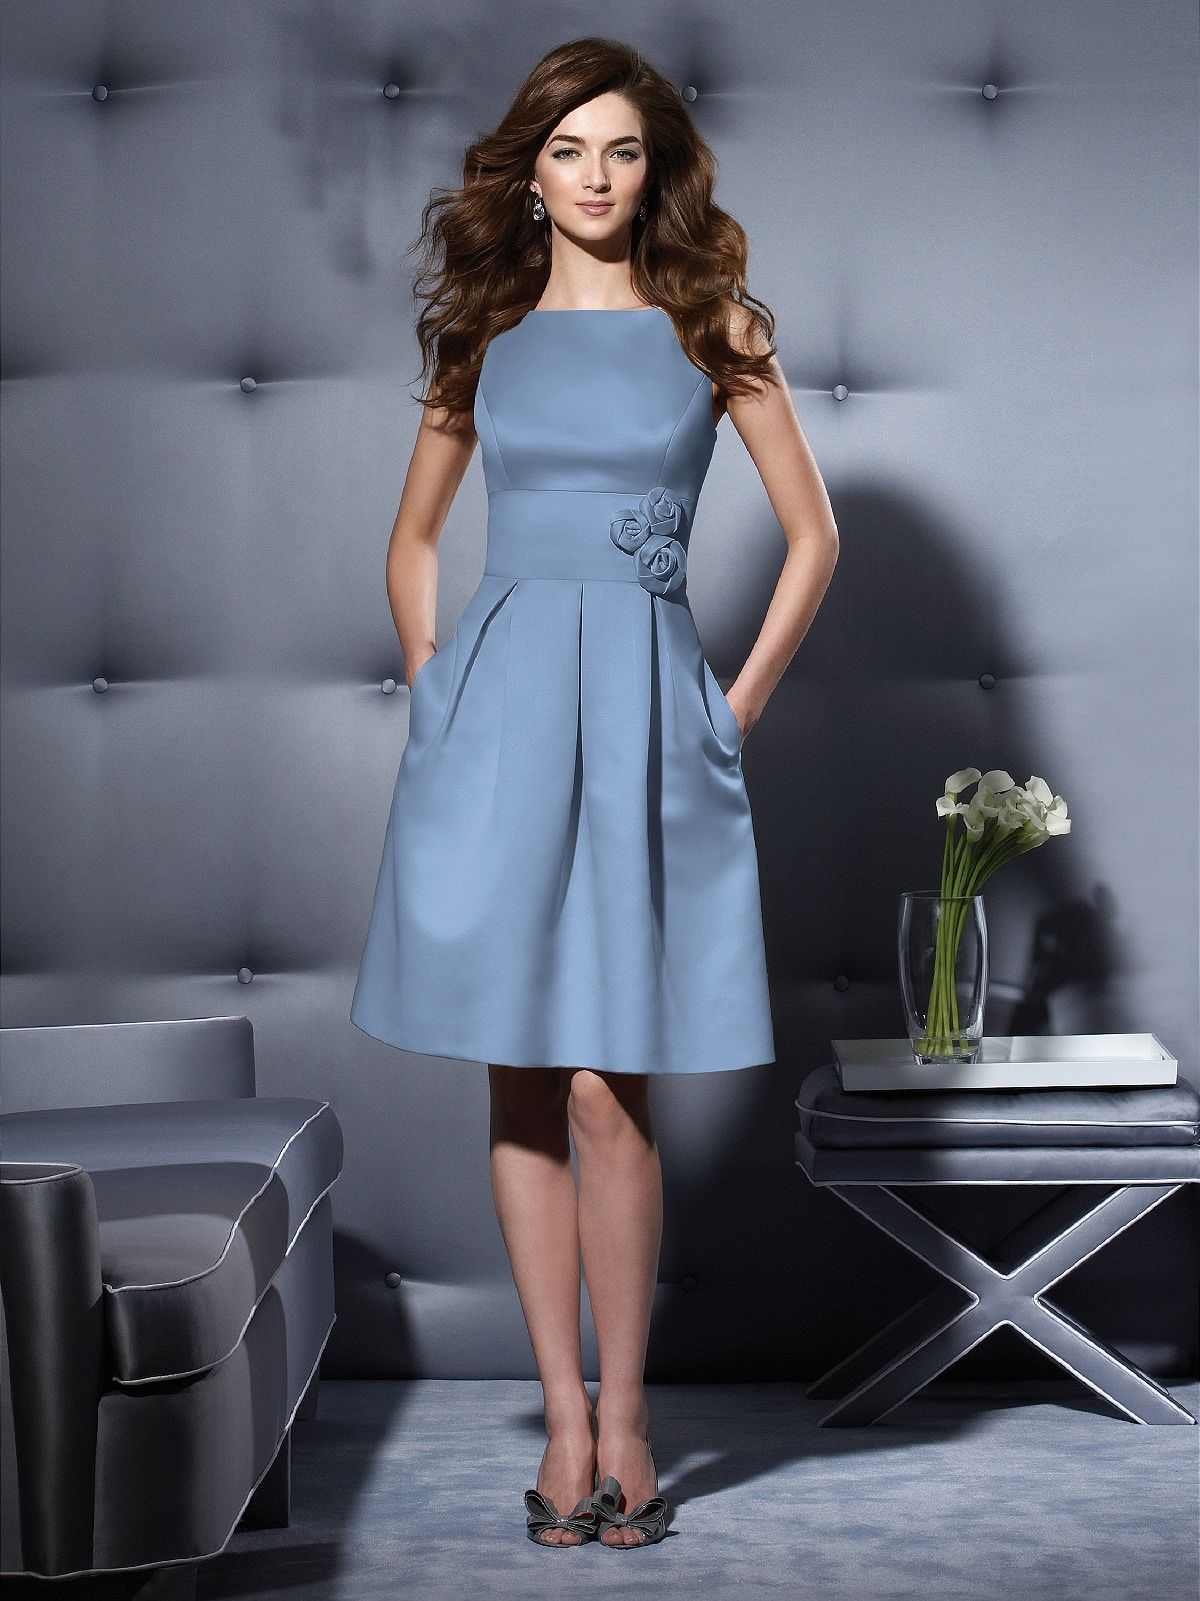 The Dessy Group Bridesmaid Dress in Windsor Blue | Wedding Ideas ...